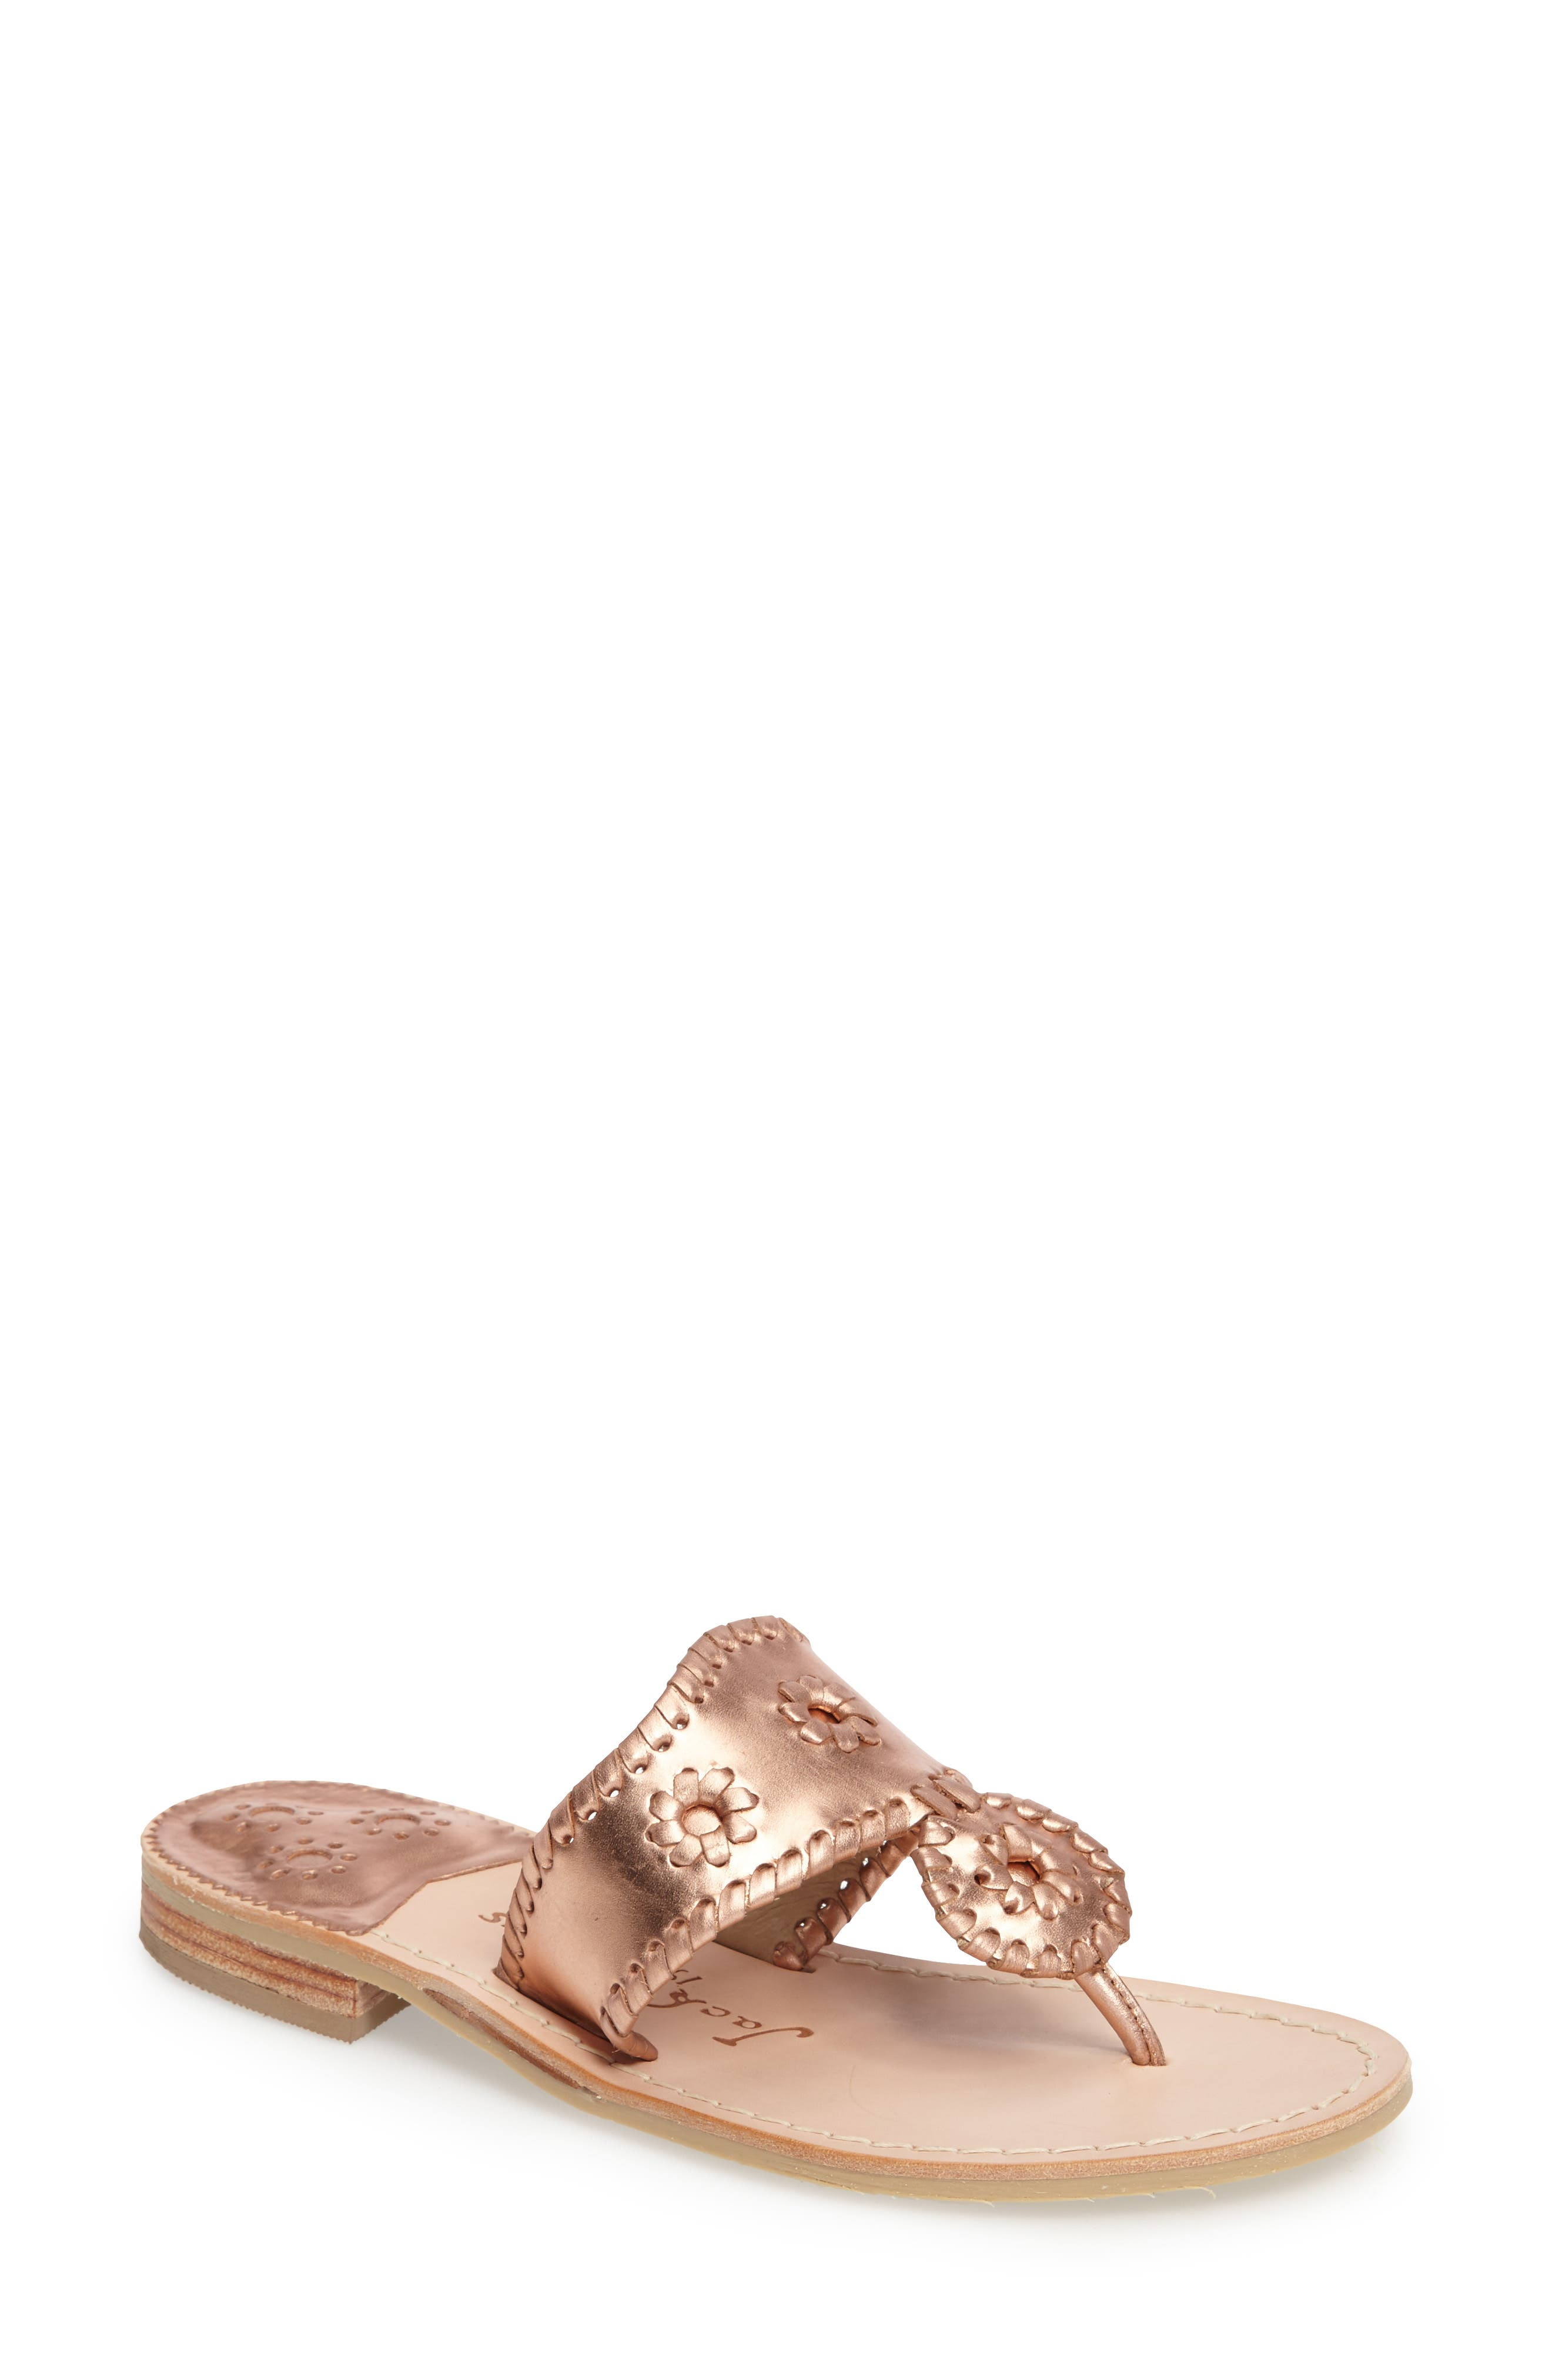 Alternate Image 1 Selected - Jack Rogers Hamptons Metallic Flip Flop (Women)